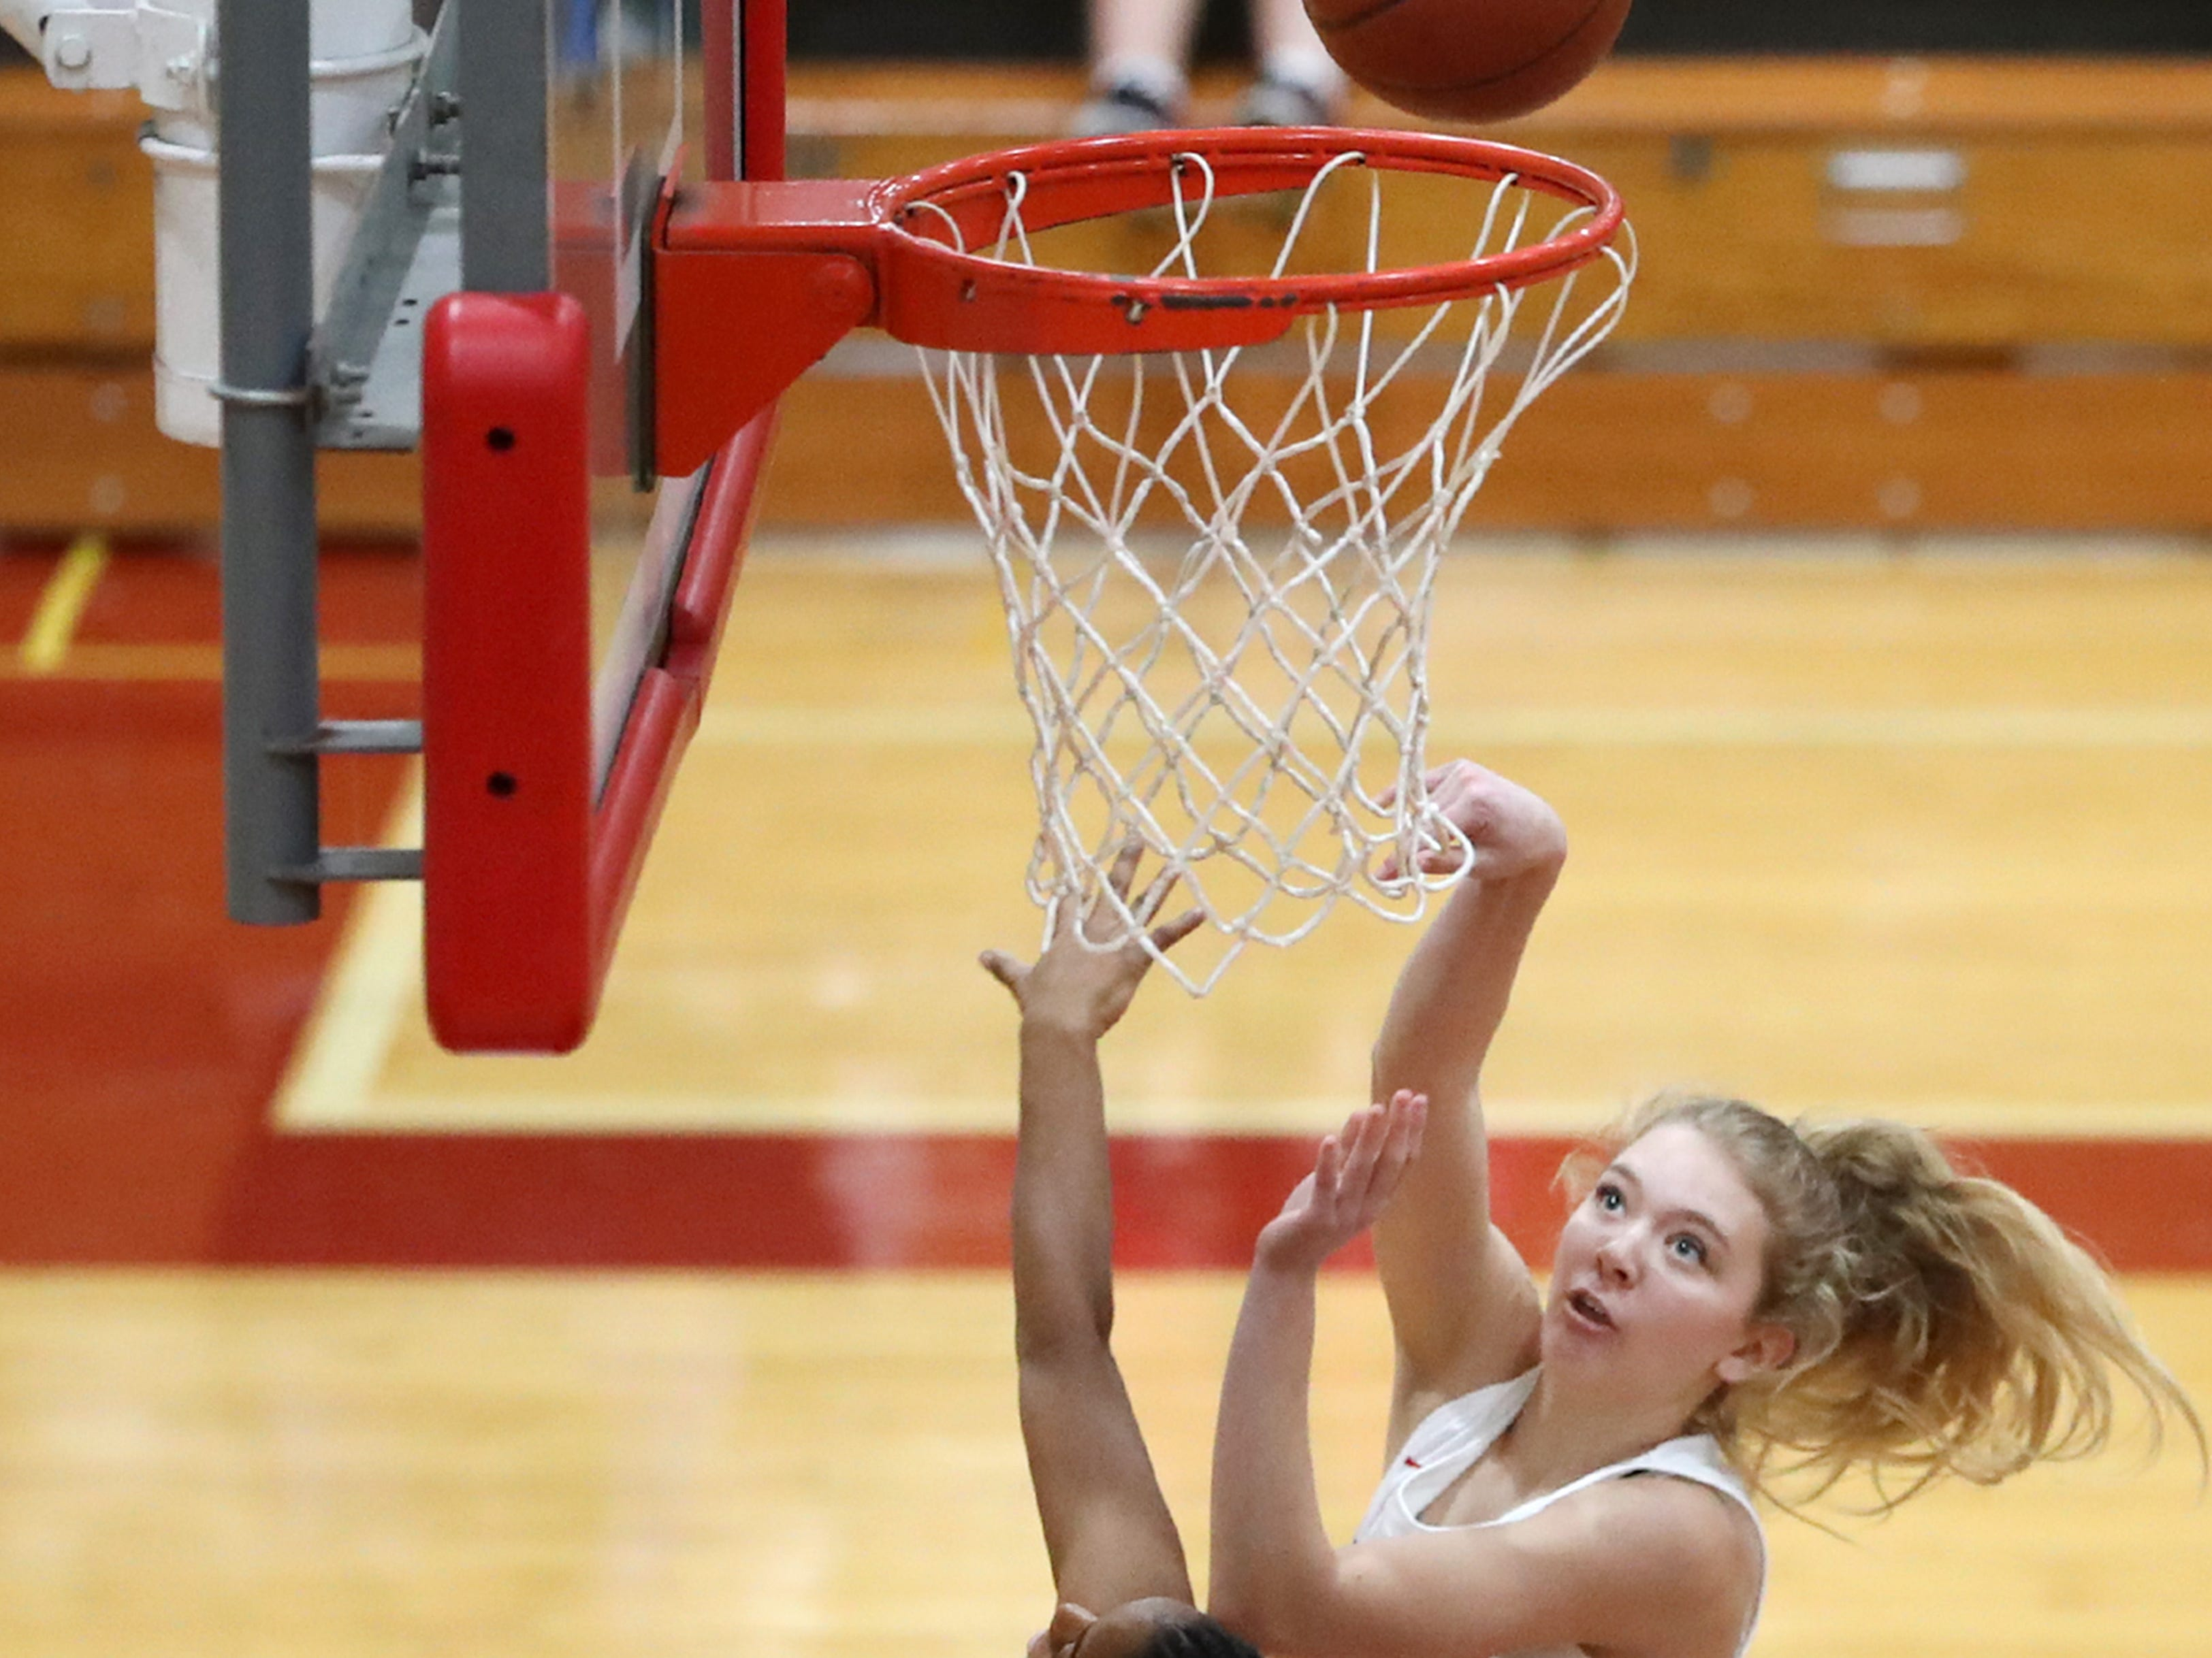 Neenah High SchoolÕs Lexi Radies goes for a layup during their game against Oshkosh North High School Friday, Jan. 18, 2019, in Neenah, Wis.